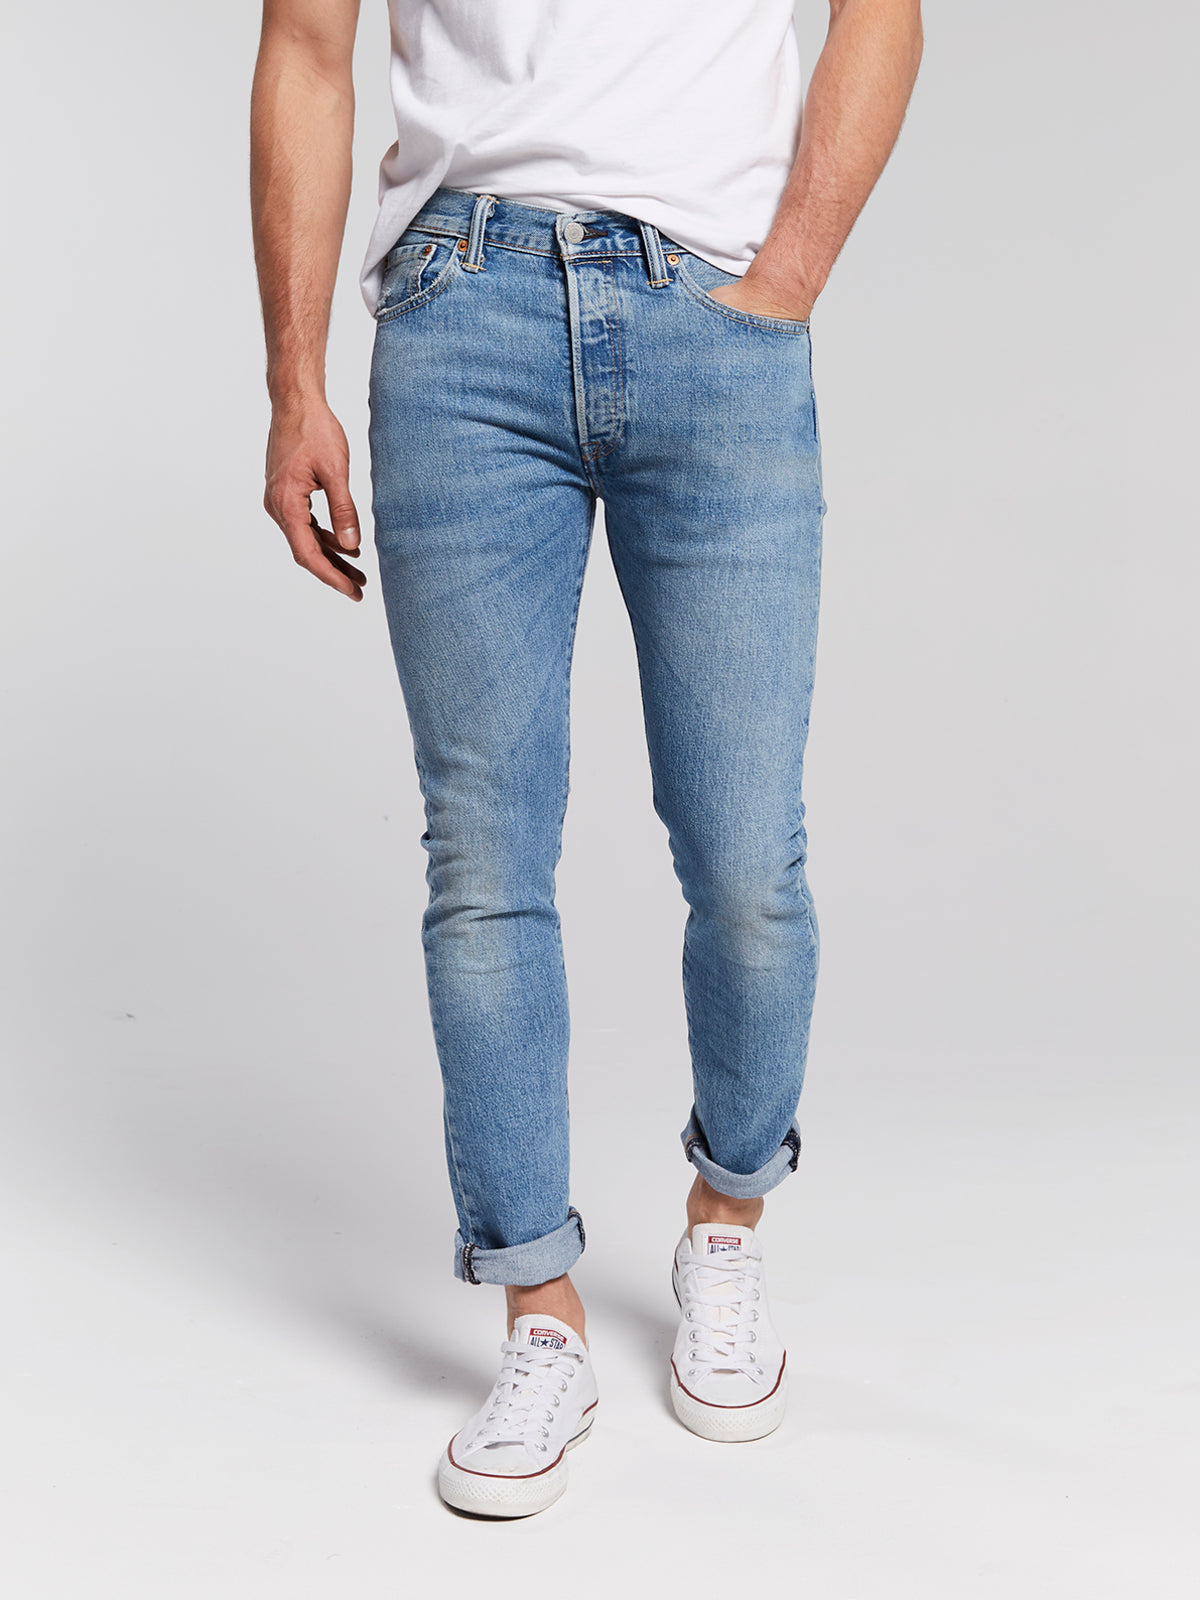 4699aecdc688 Levi's 501 Skinny Jeans - West Coast - Guys – O's Clothes